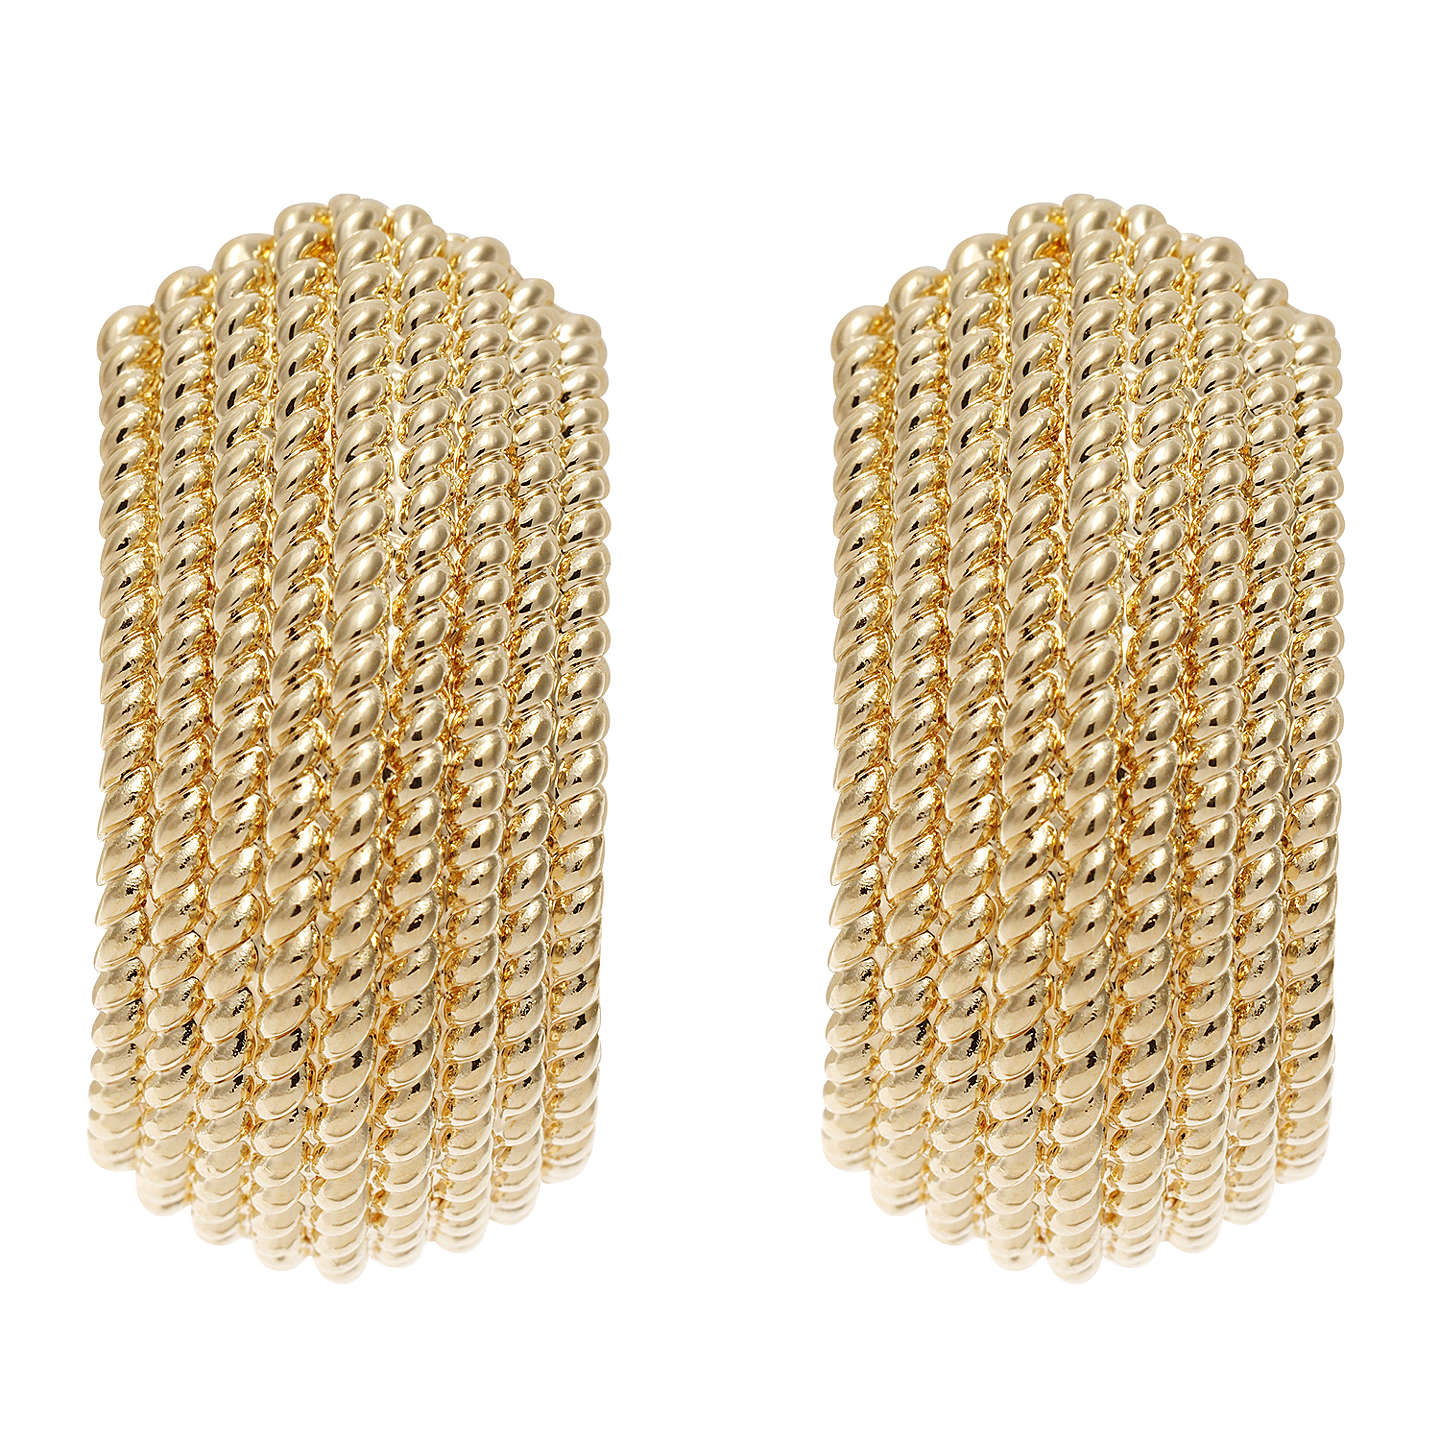 BuyFinesse Textured Clip-On Earrings, Gold Online at johnlewis.com